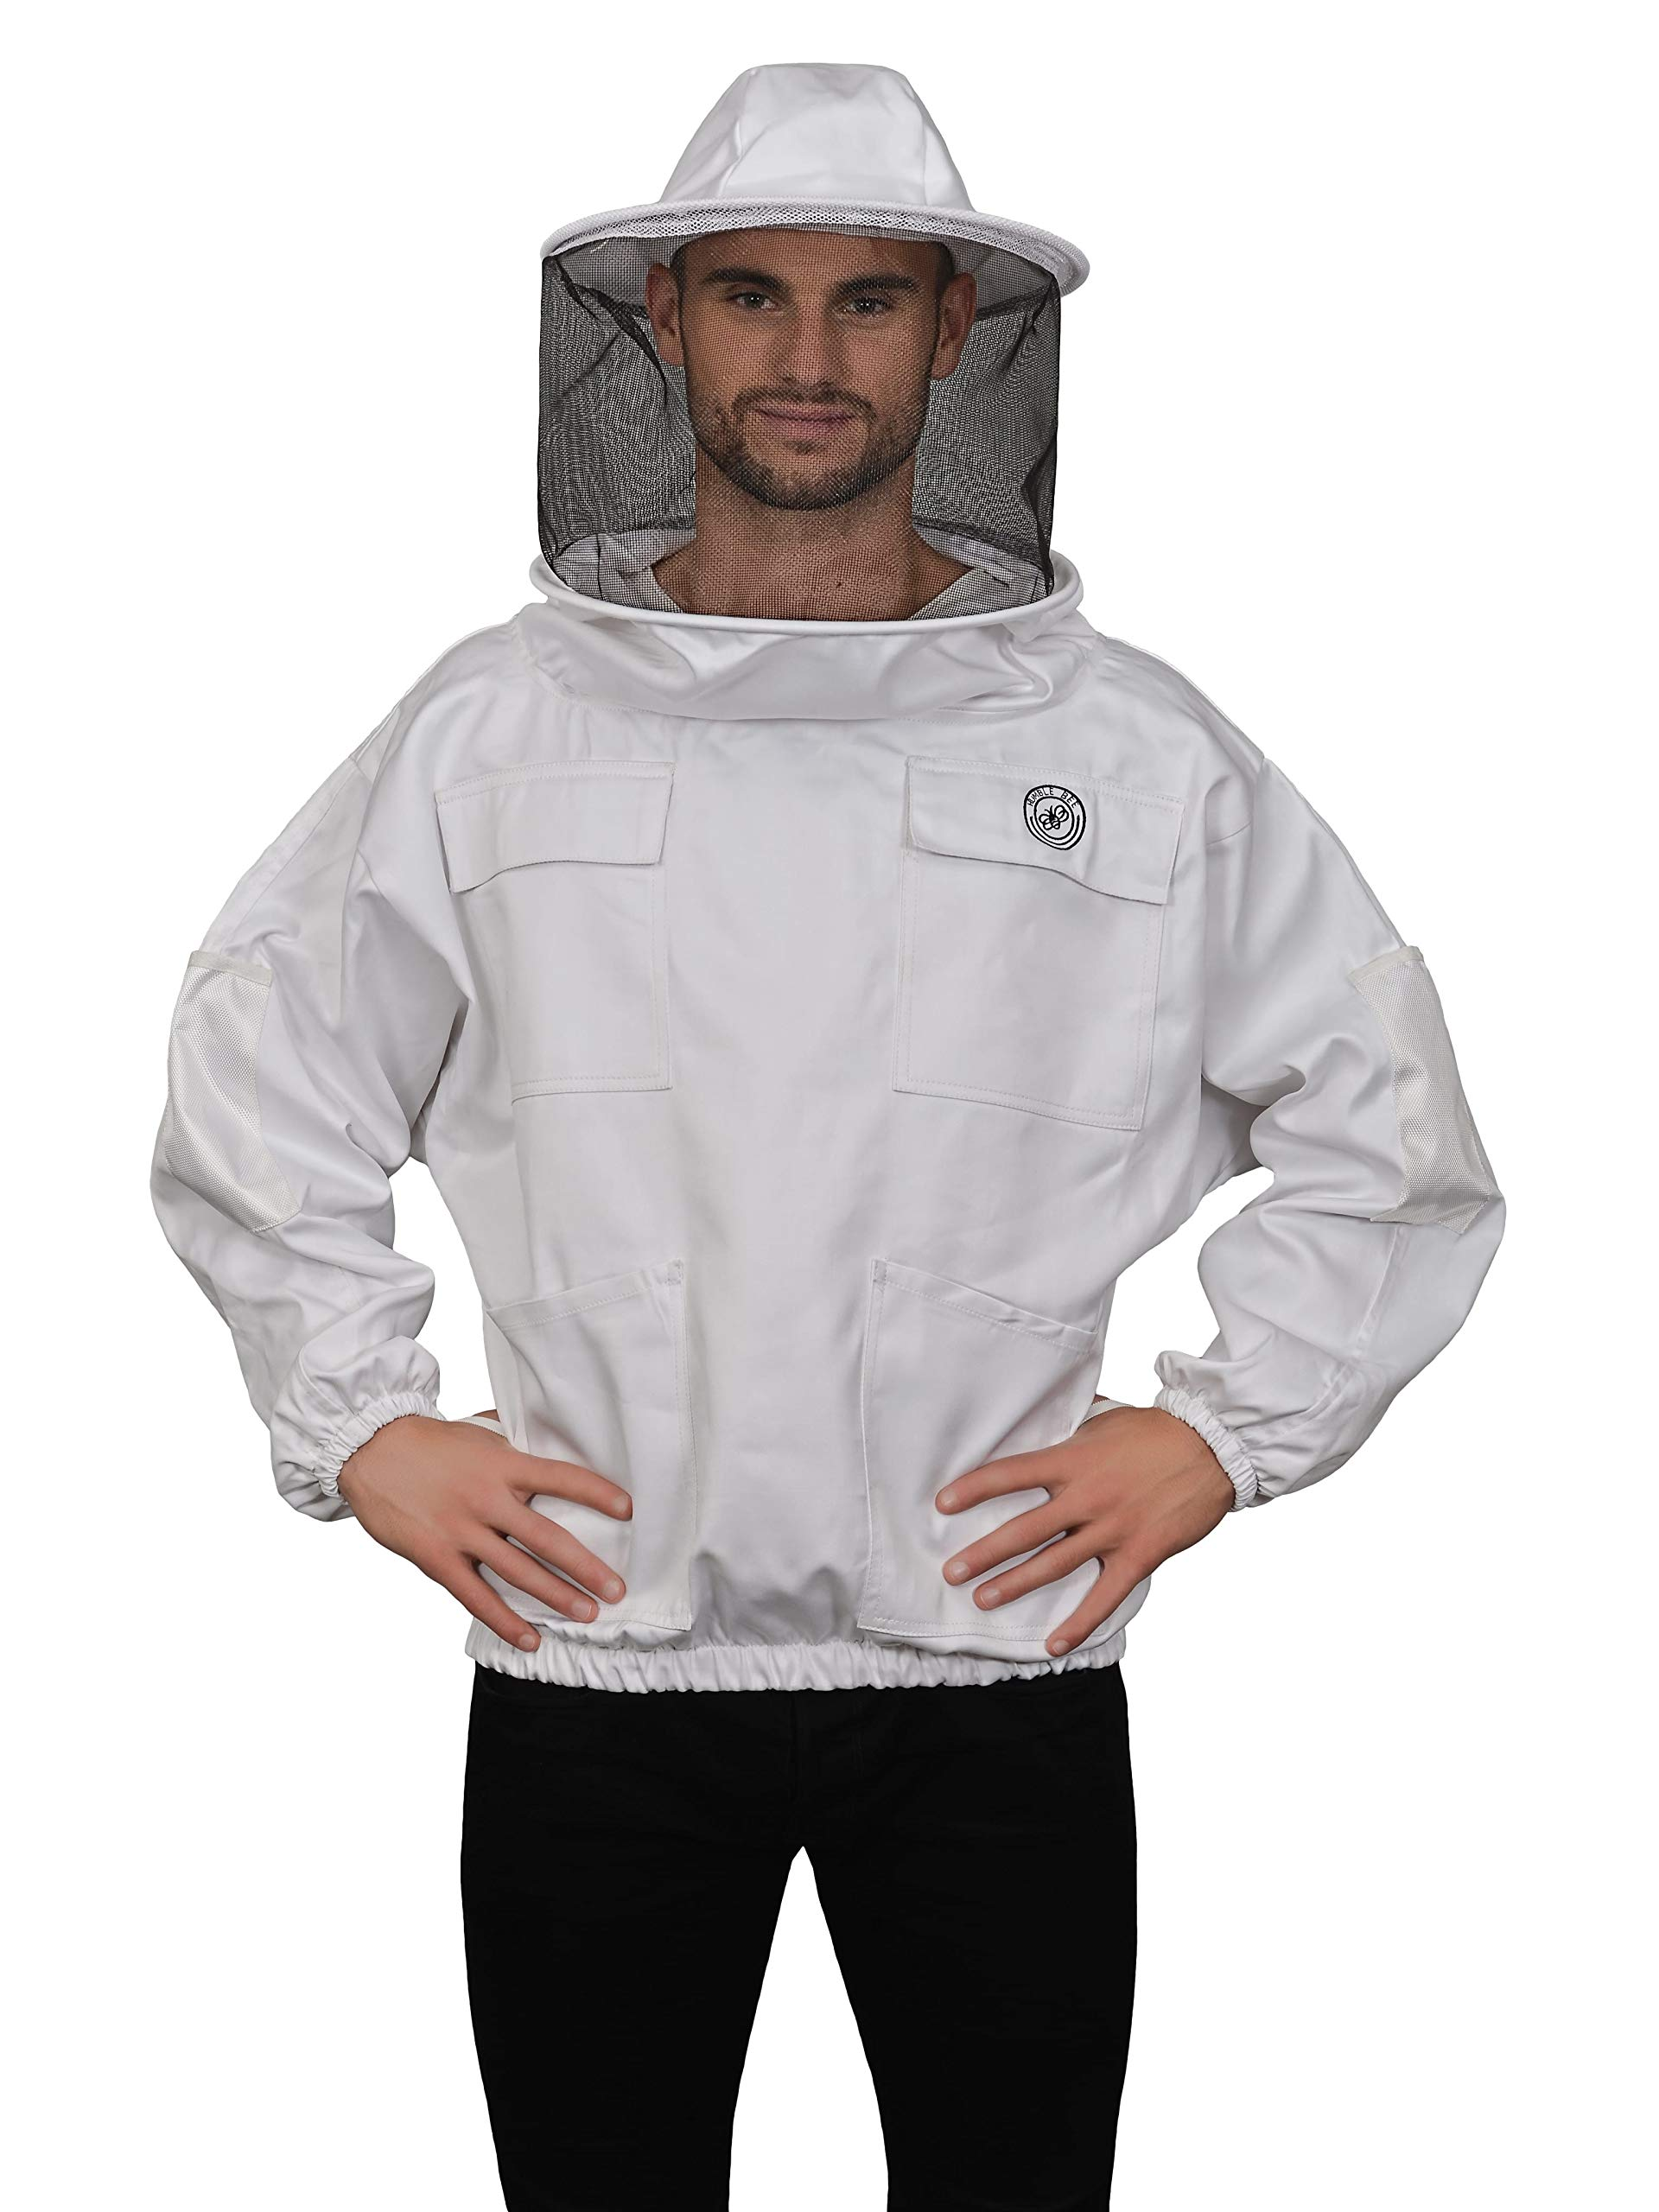 Humble Bee 510 Polycotton Beekeeping Smock with Round Veil by Humble Bee